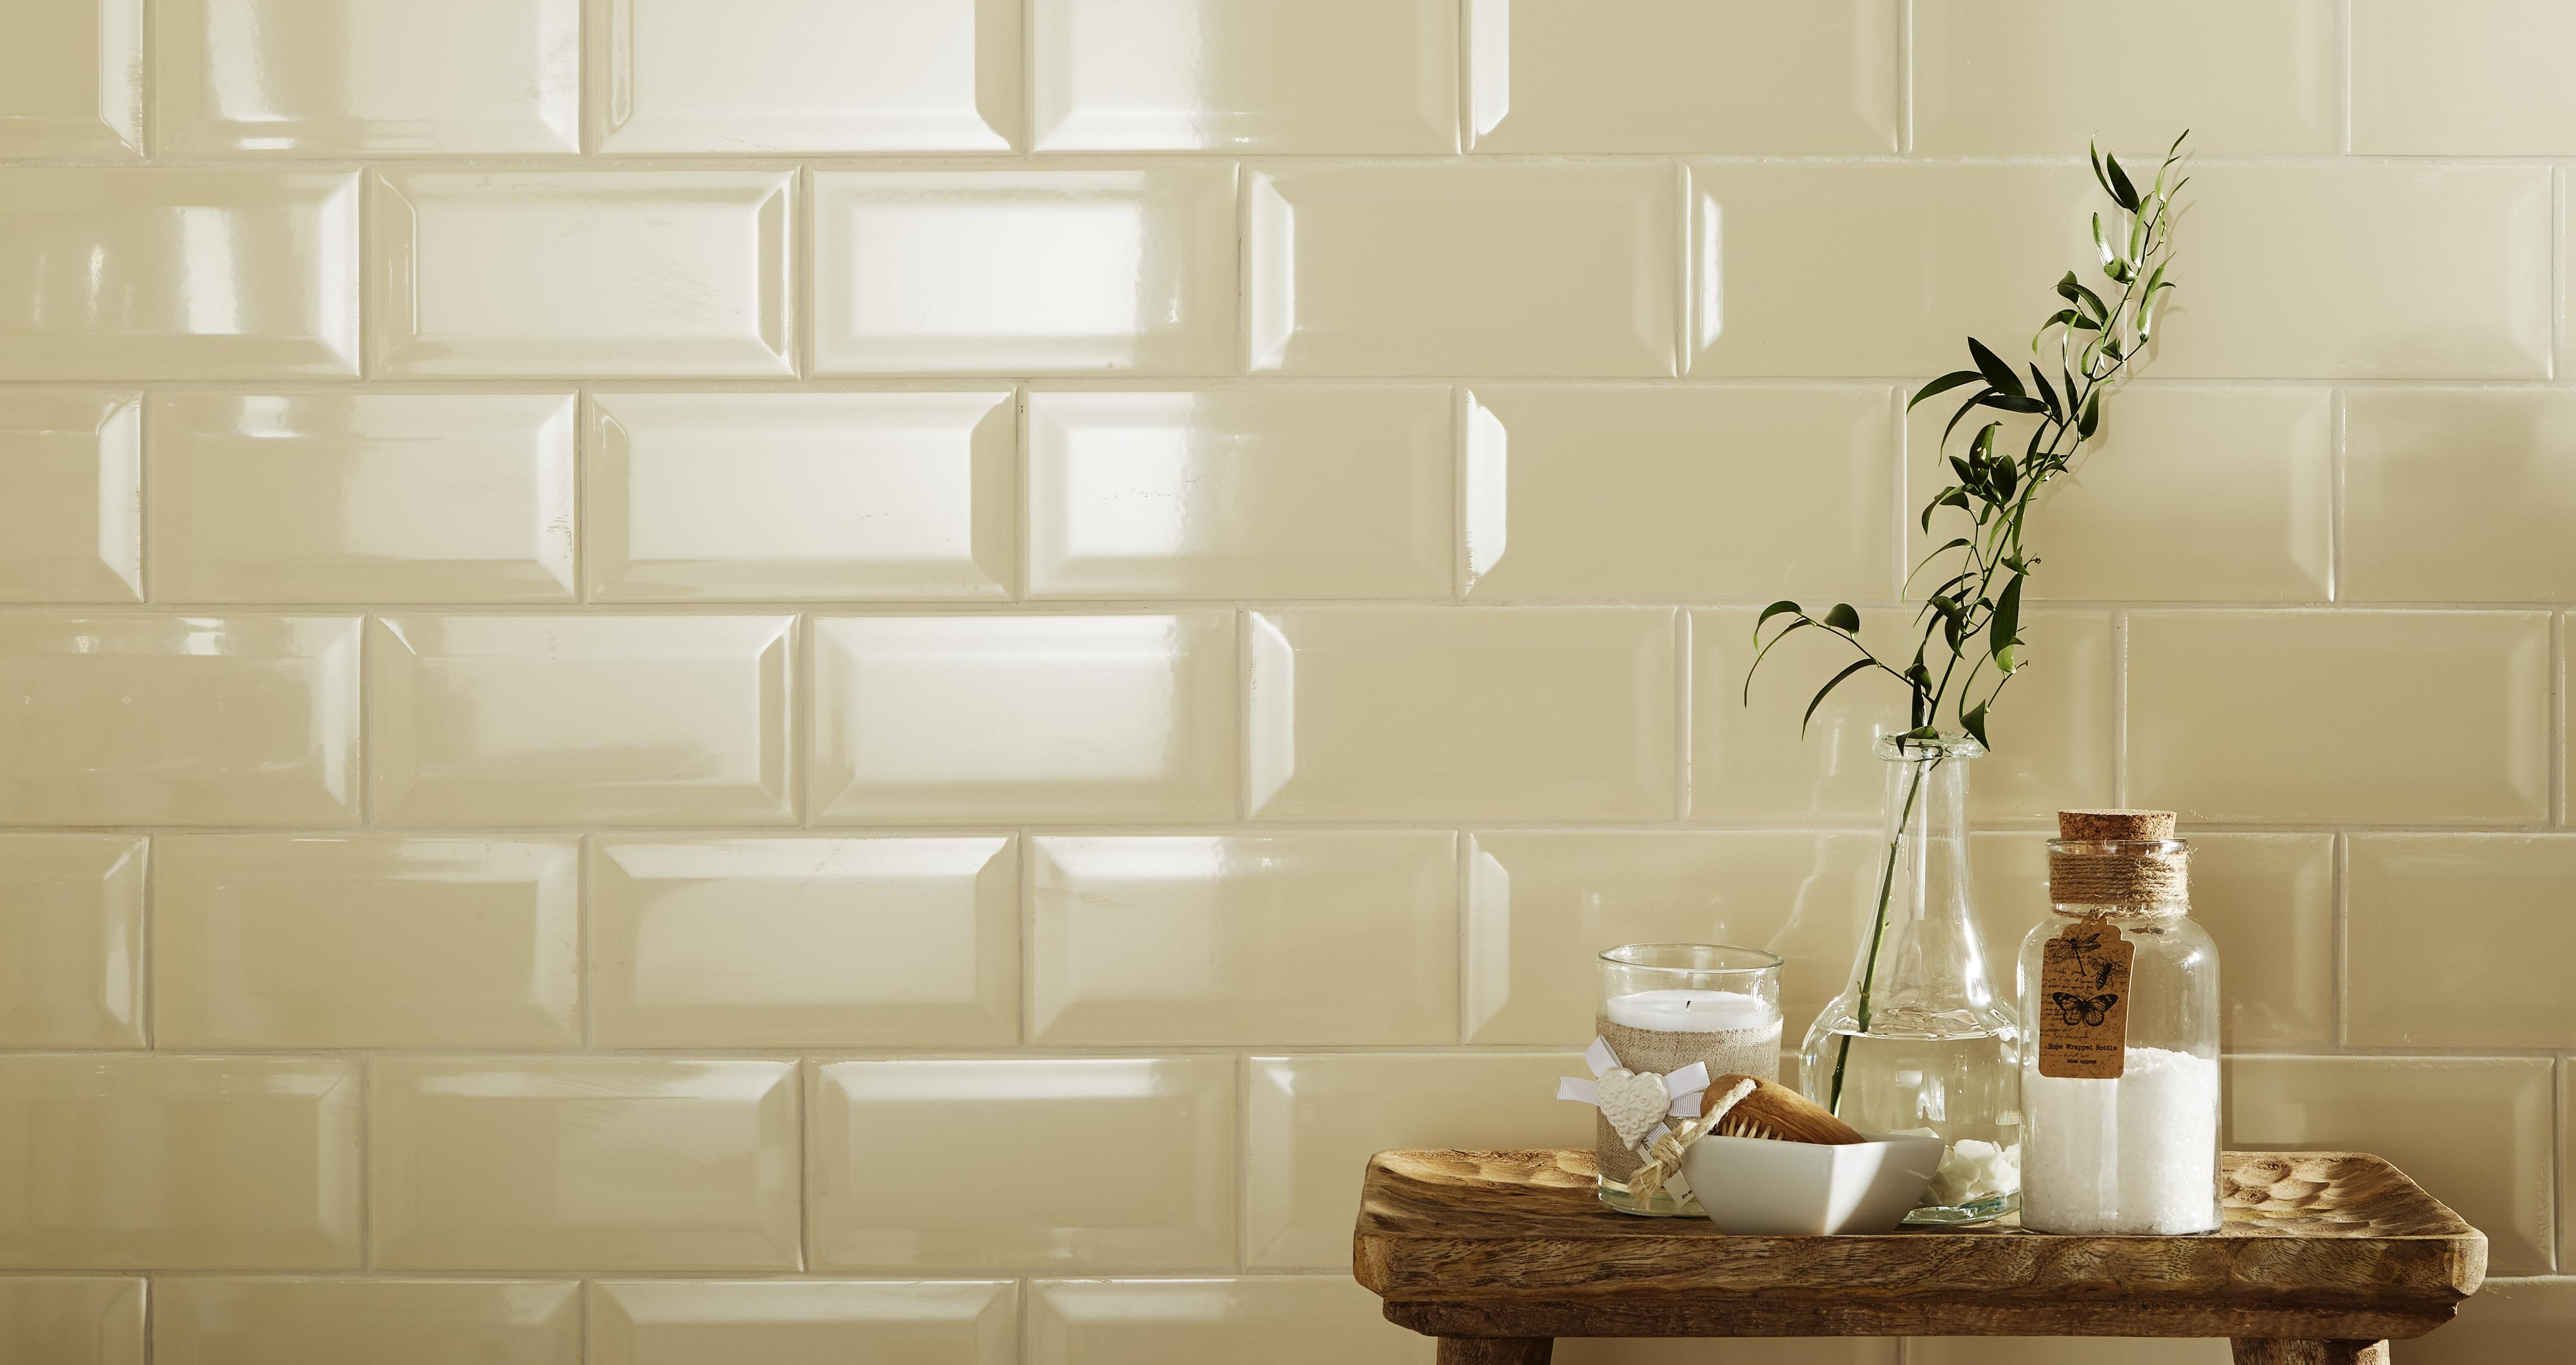 Buyer's guide to tiles